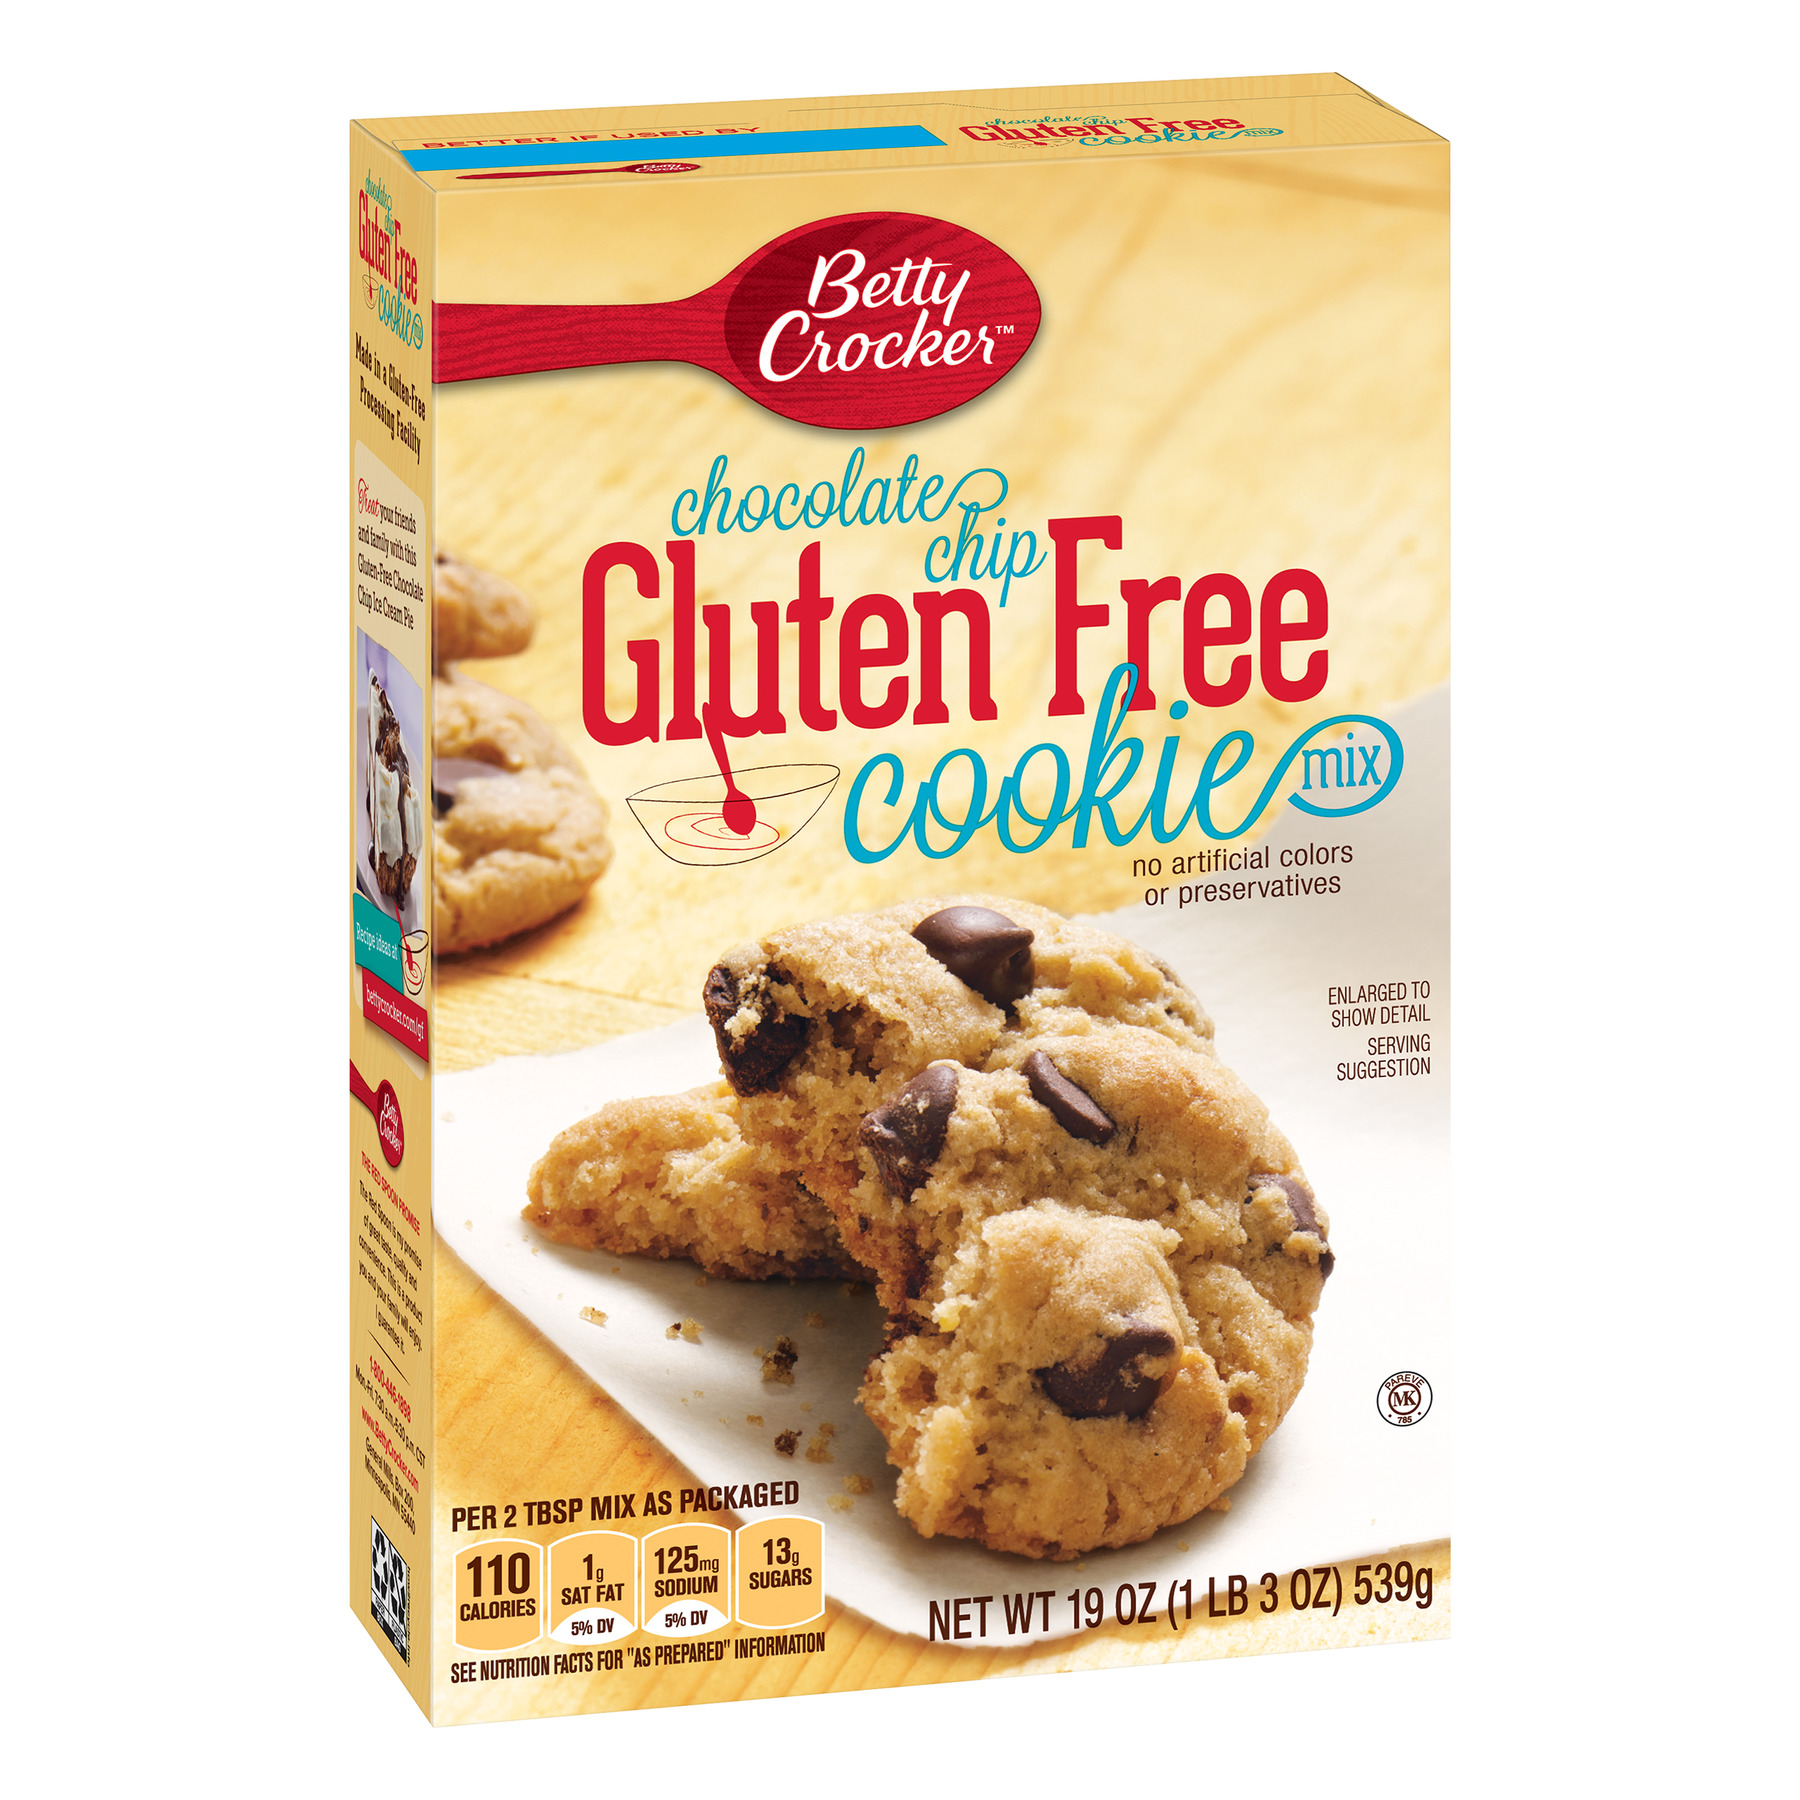 Betty Crocker Gluten Free Chocolate Chip Cookie Mix, 19 oz